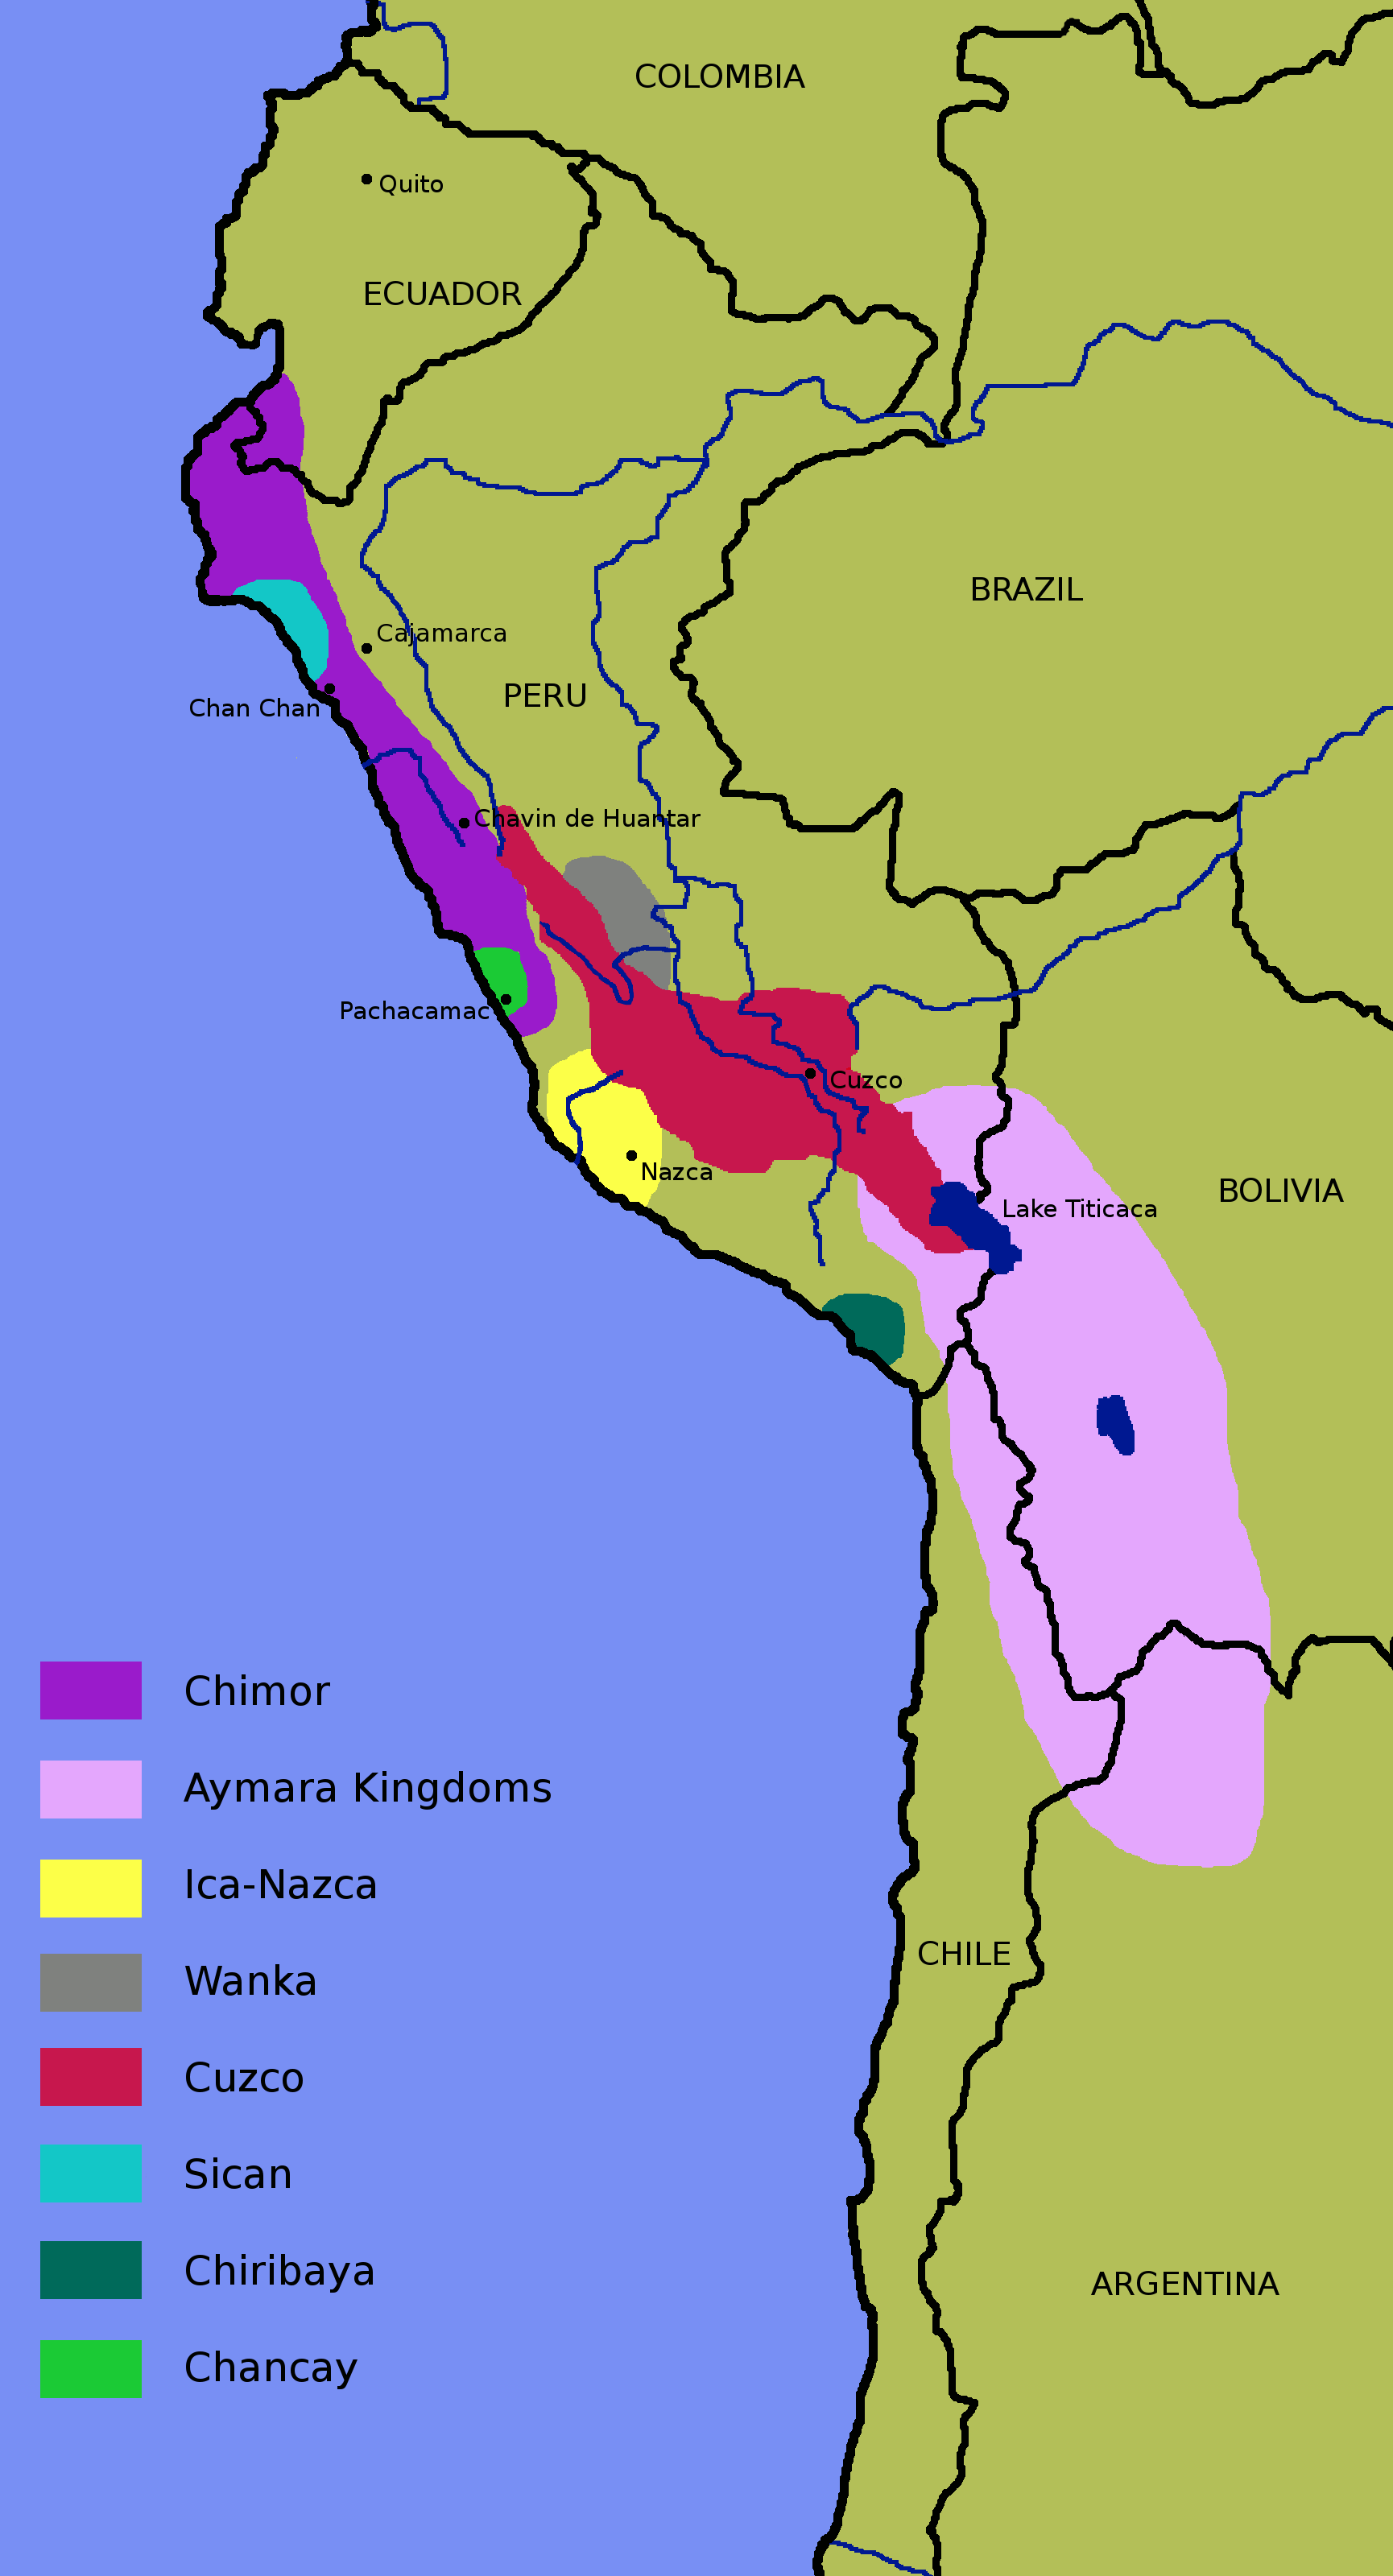 Atlas of the Inca Empire - Wikimedia Commons on greece map, inca warriors, lima map, inca city, inca buildings, inca pyramids, inca people, inca roads, chimu map, inca civilization, brazil map, tenochtitlan map, inca houses, inca trail, mesoamerica map, inca food, china map, inca crops, inca art, inca flag,